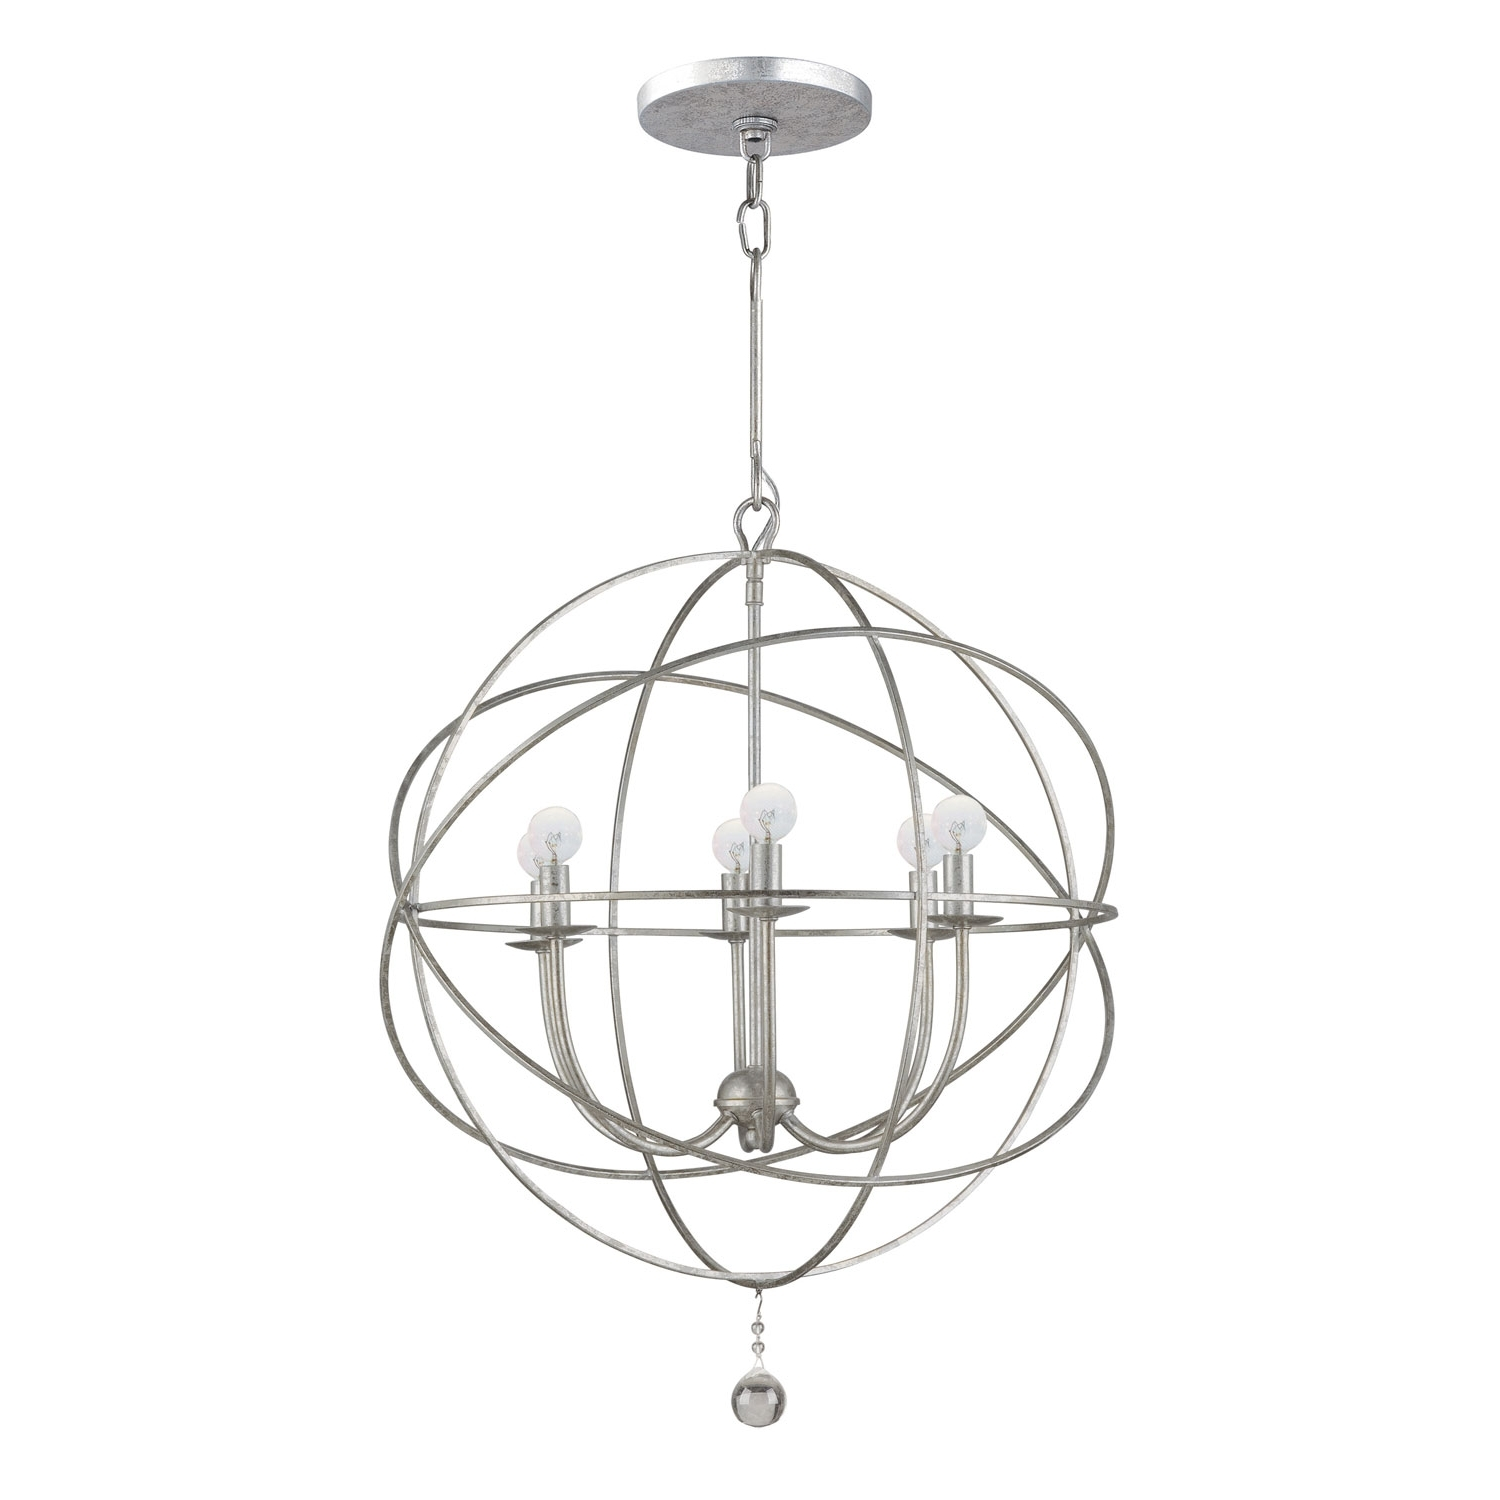 Silver Chandeliers Regarding 2017 Crystorama Lighting Group Solaris Olde Silver Six Light Chandelier (View 10 of 15)